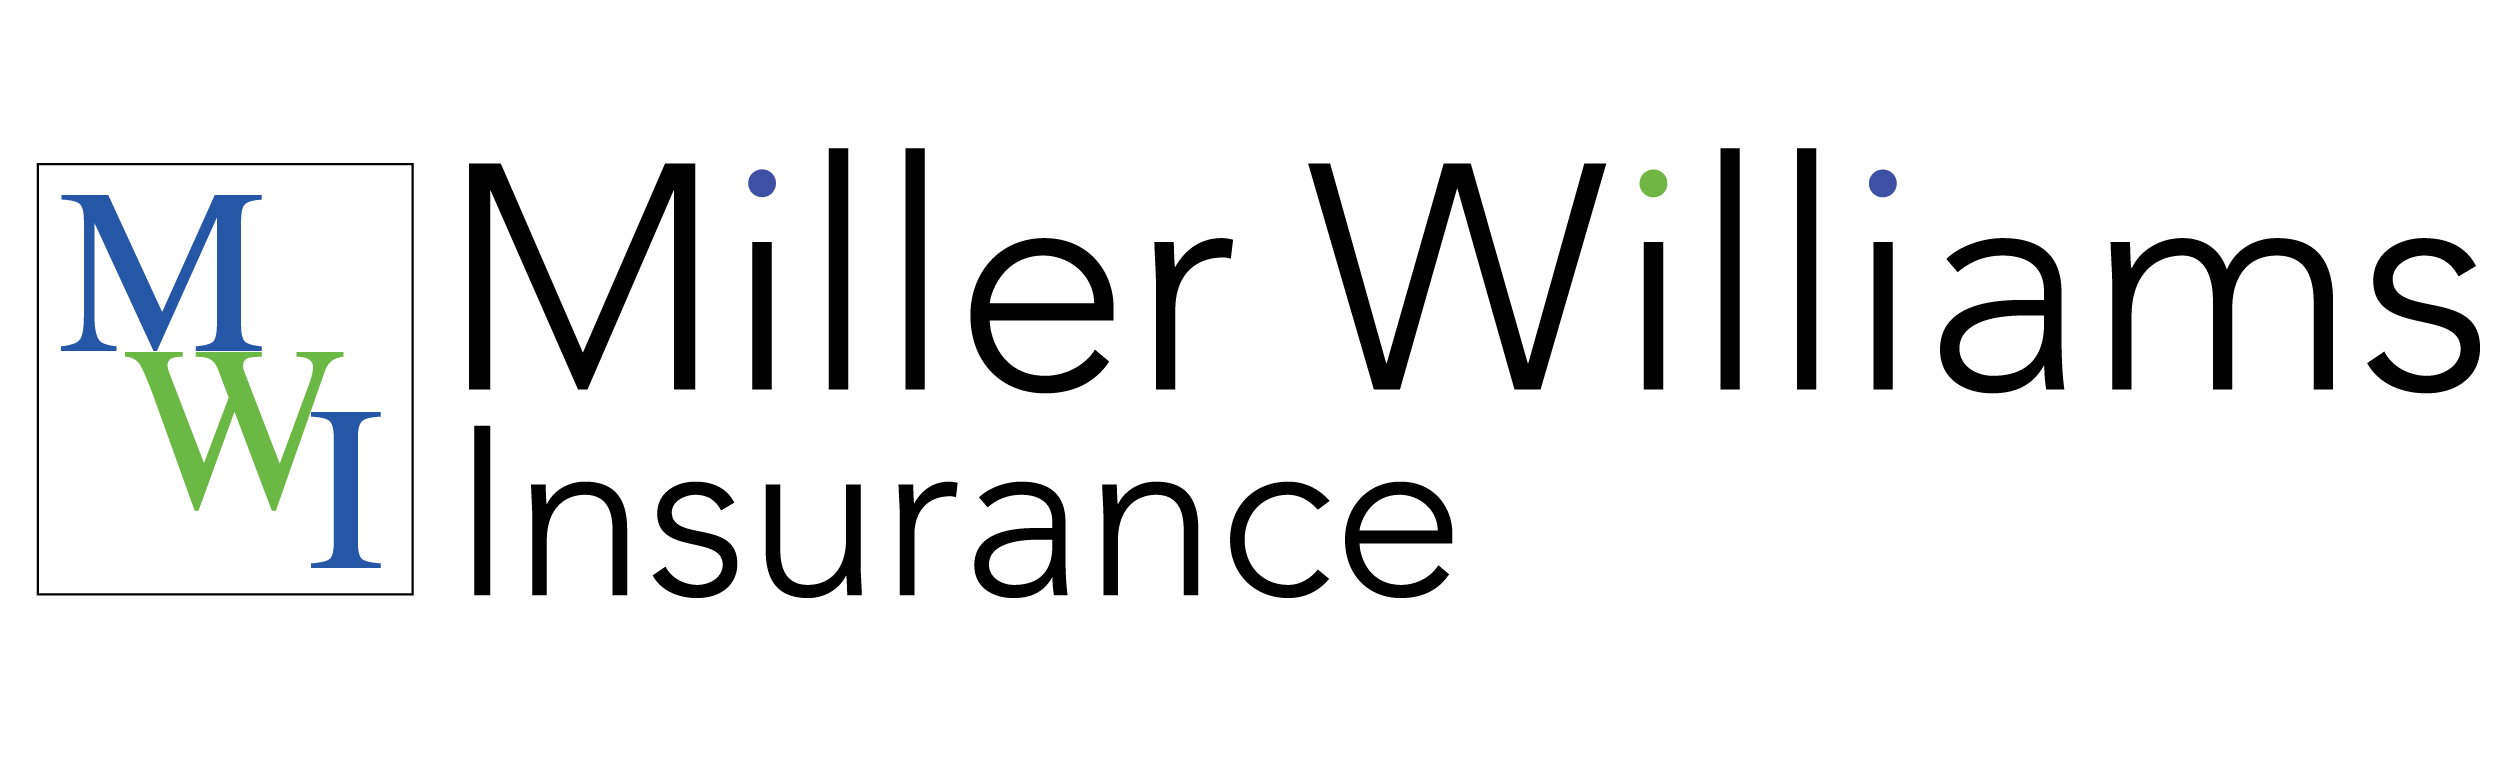 Landlord Insurance Quote Rental Dwelling  Landlord Insurance  Miller Williams Insurance